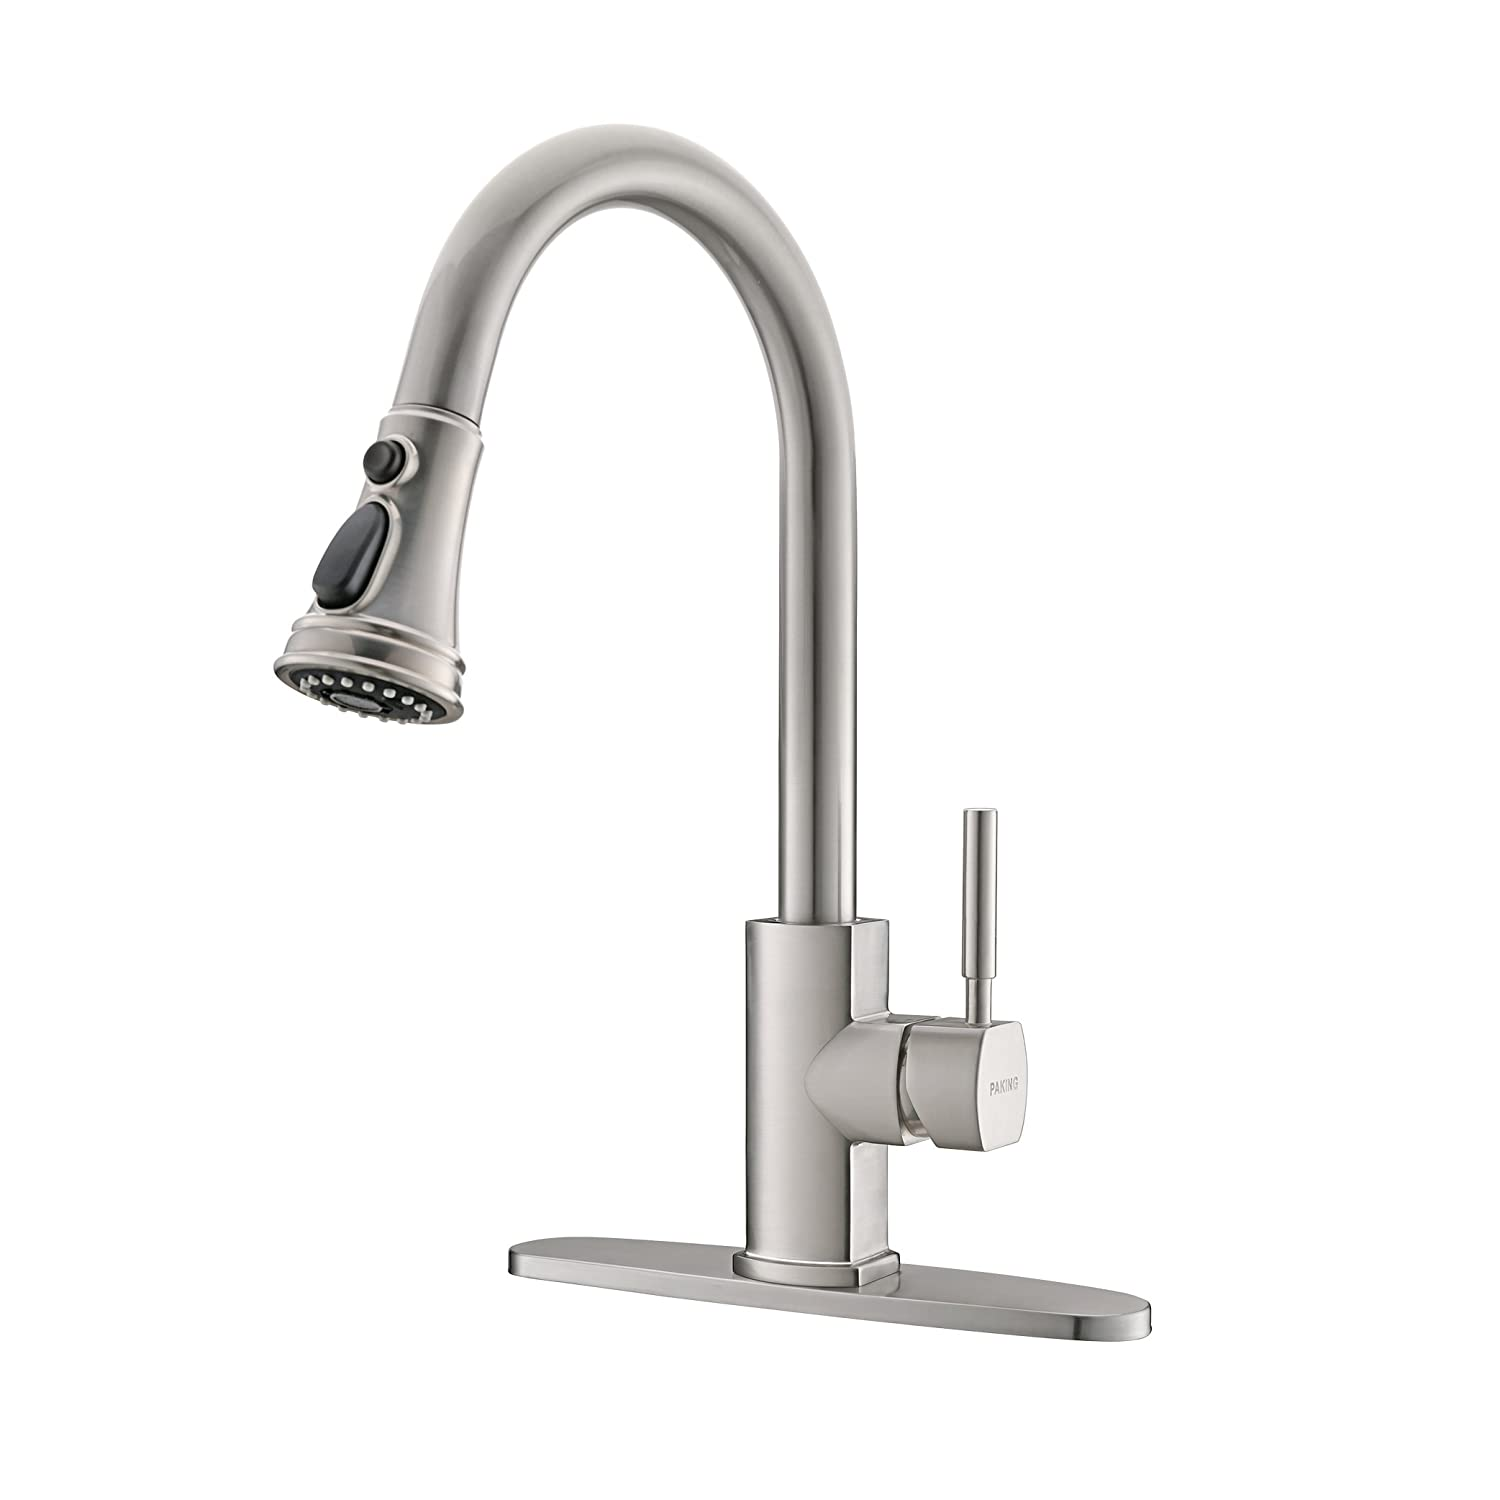 Paking Kitchen Faucet Kitchen Sink Faucet Sink Faucet Brushed Nickel Kitchen Faucets With Pull Down Sprayer Stainless Steel Bar Kitchen Faucet